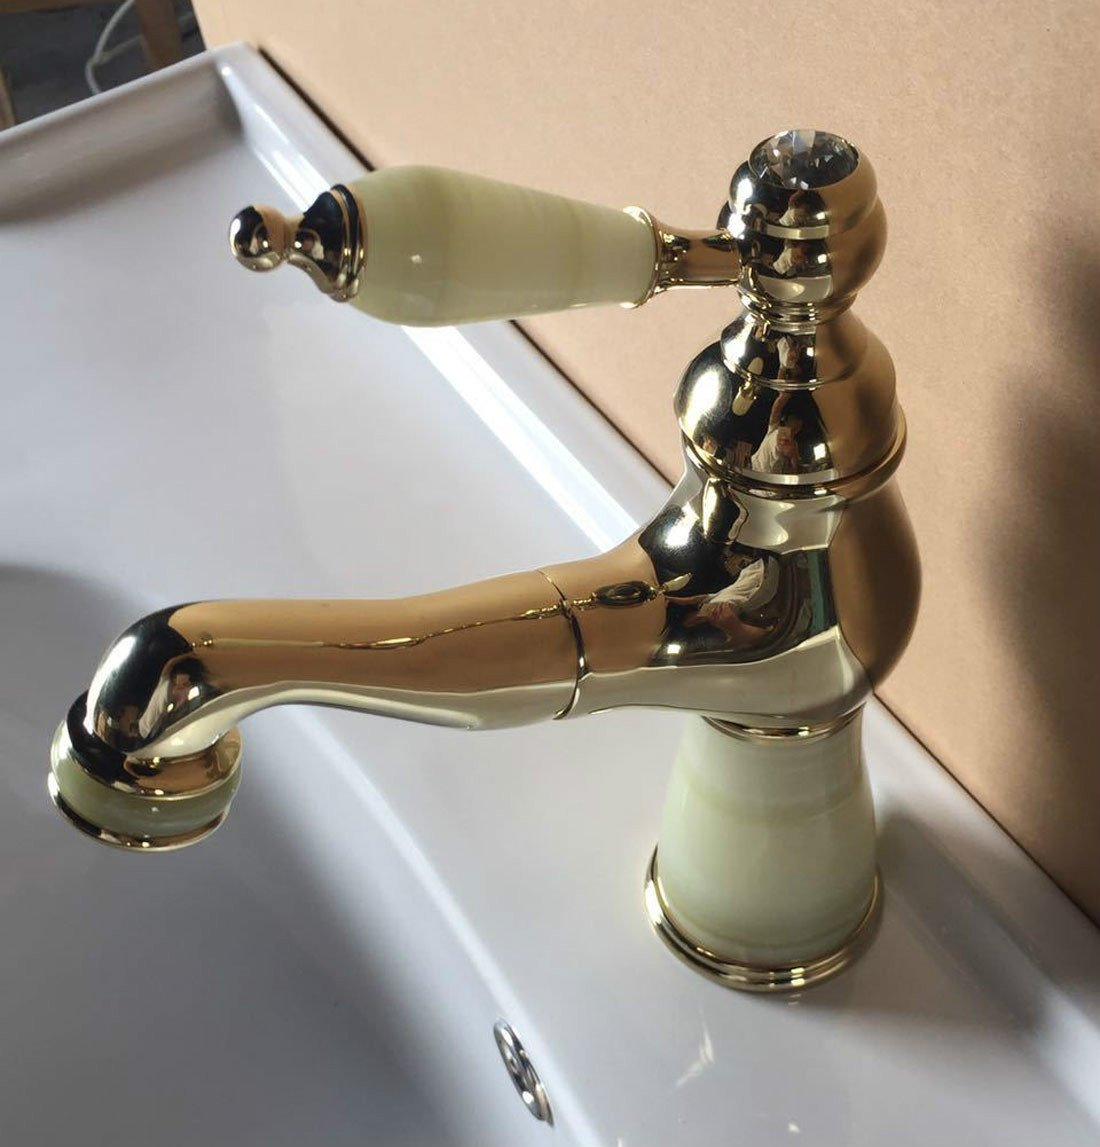 MDRW-Pull type multifunctional cold and hot water tap